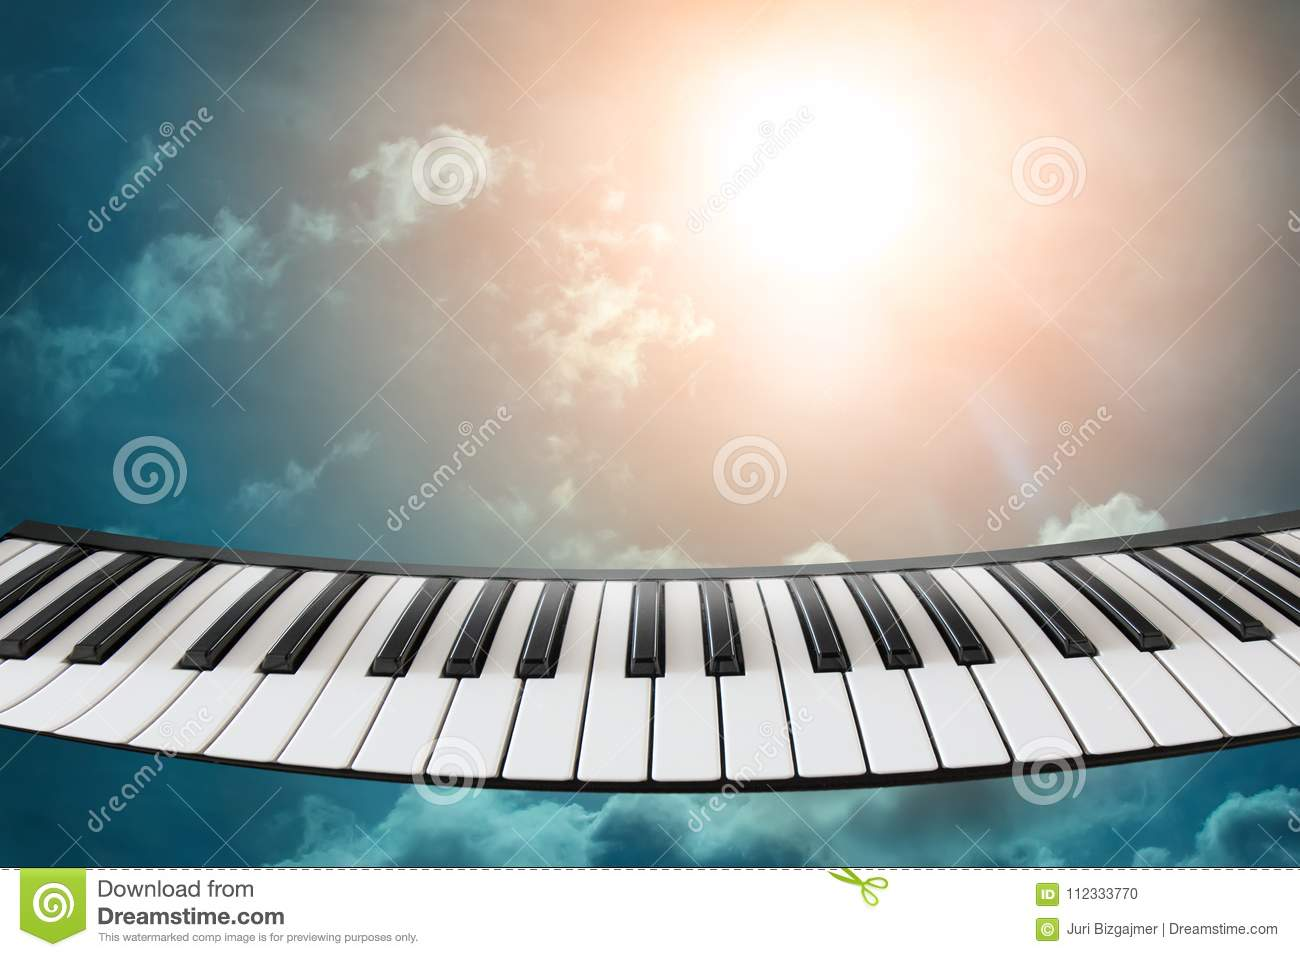 Composition Of Piano Keyboard On Sky Background  Stock Photo - Image